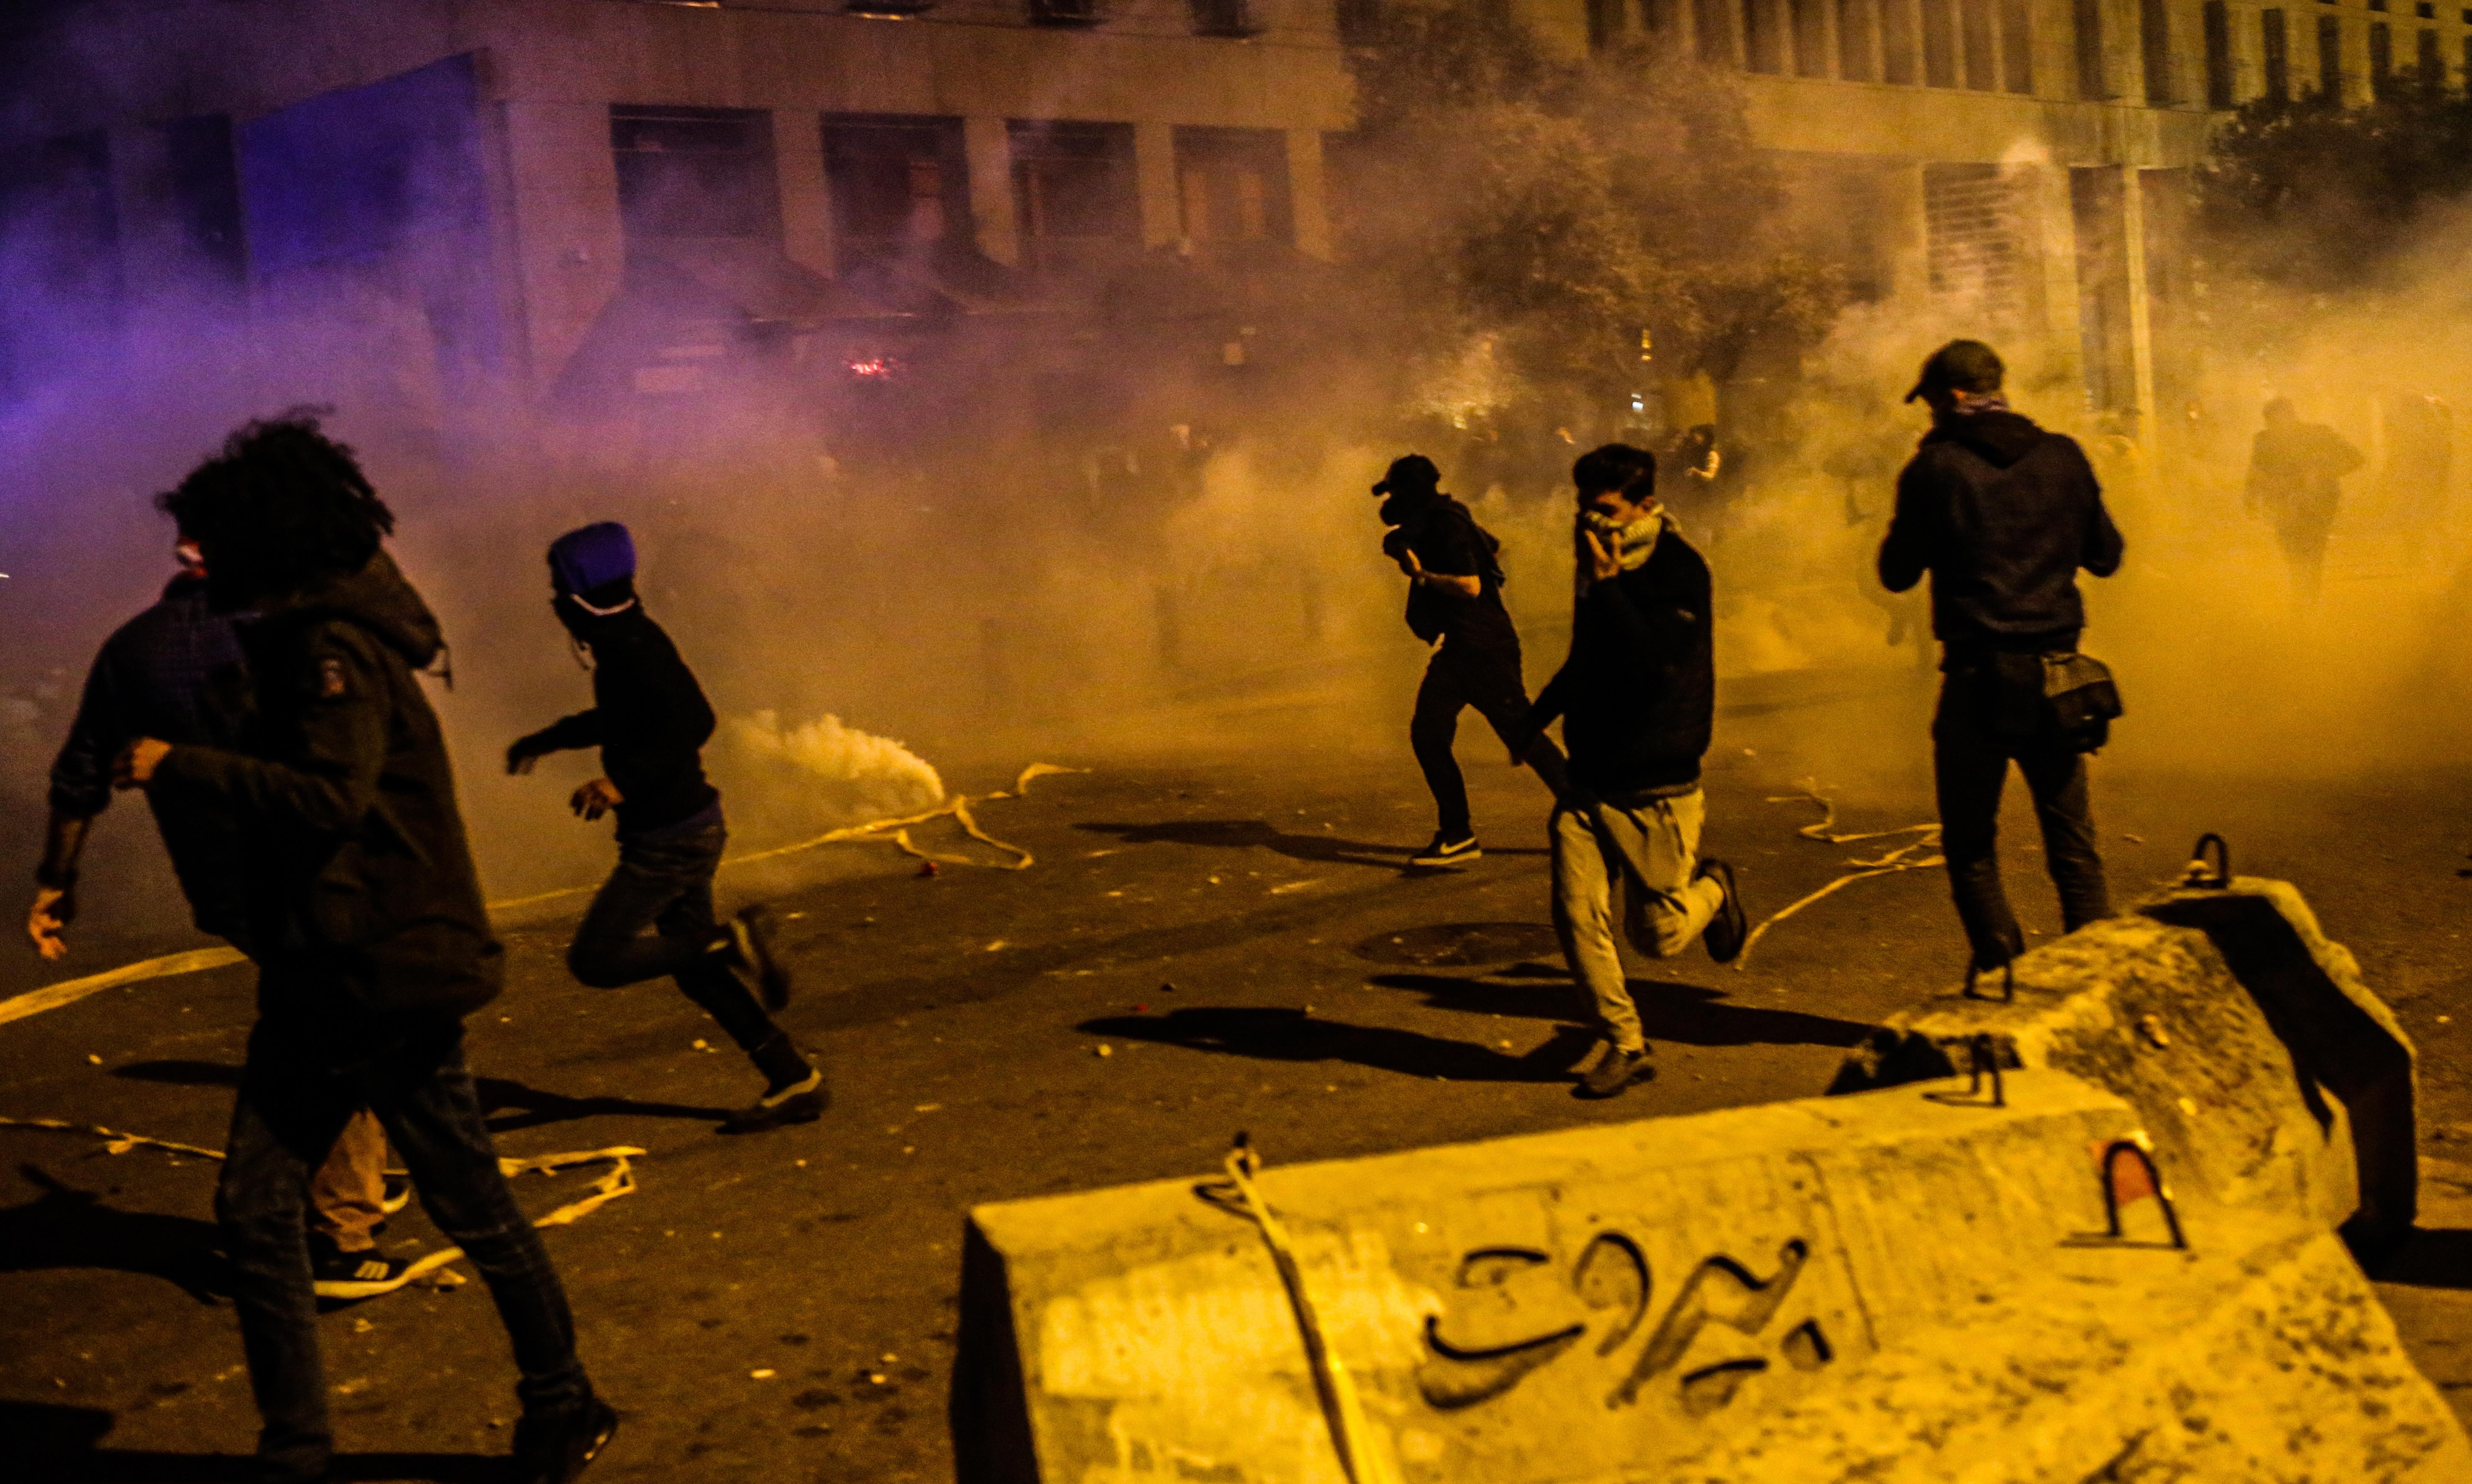 Lebanon protests: 40 injured as violence flares again in Beirut